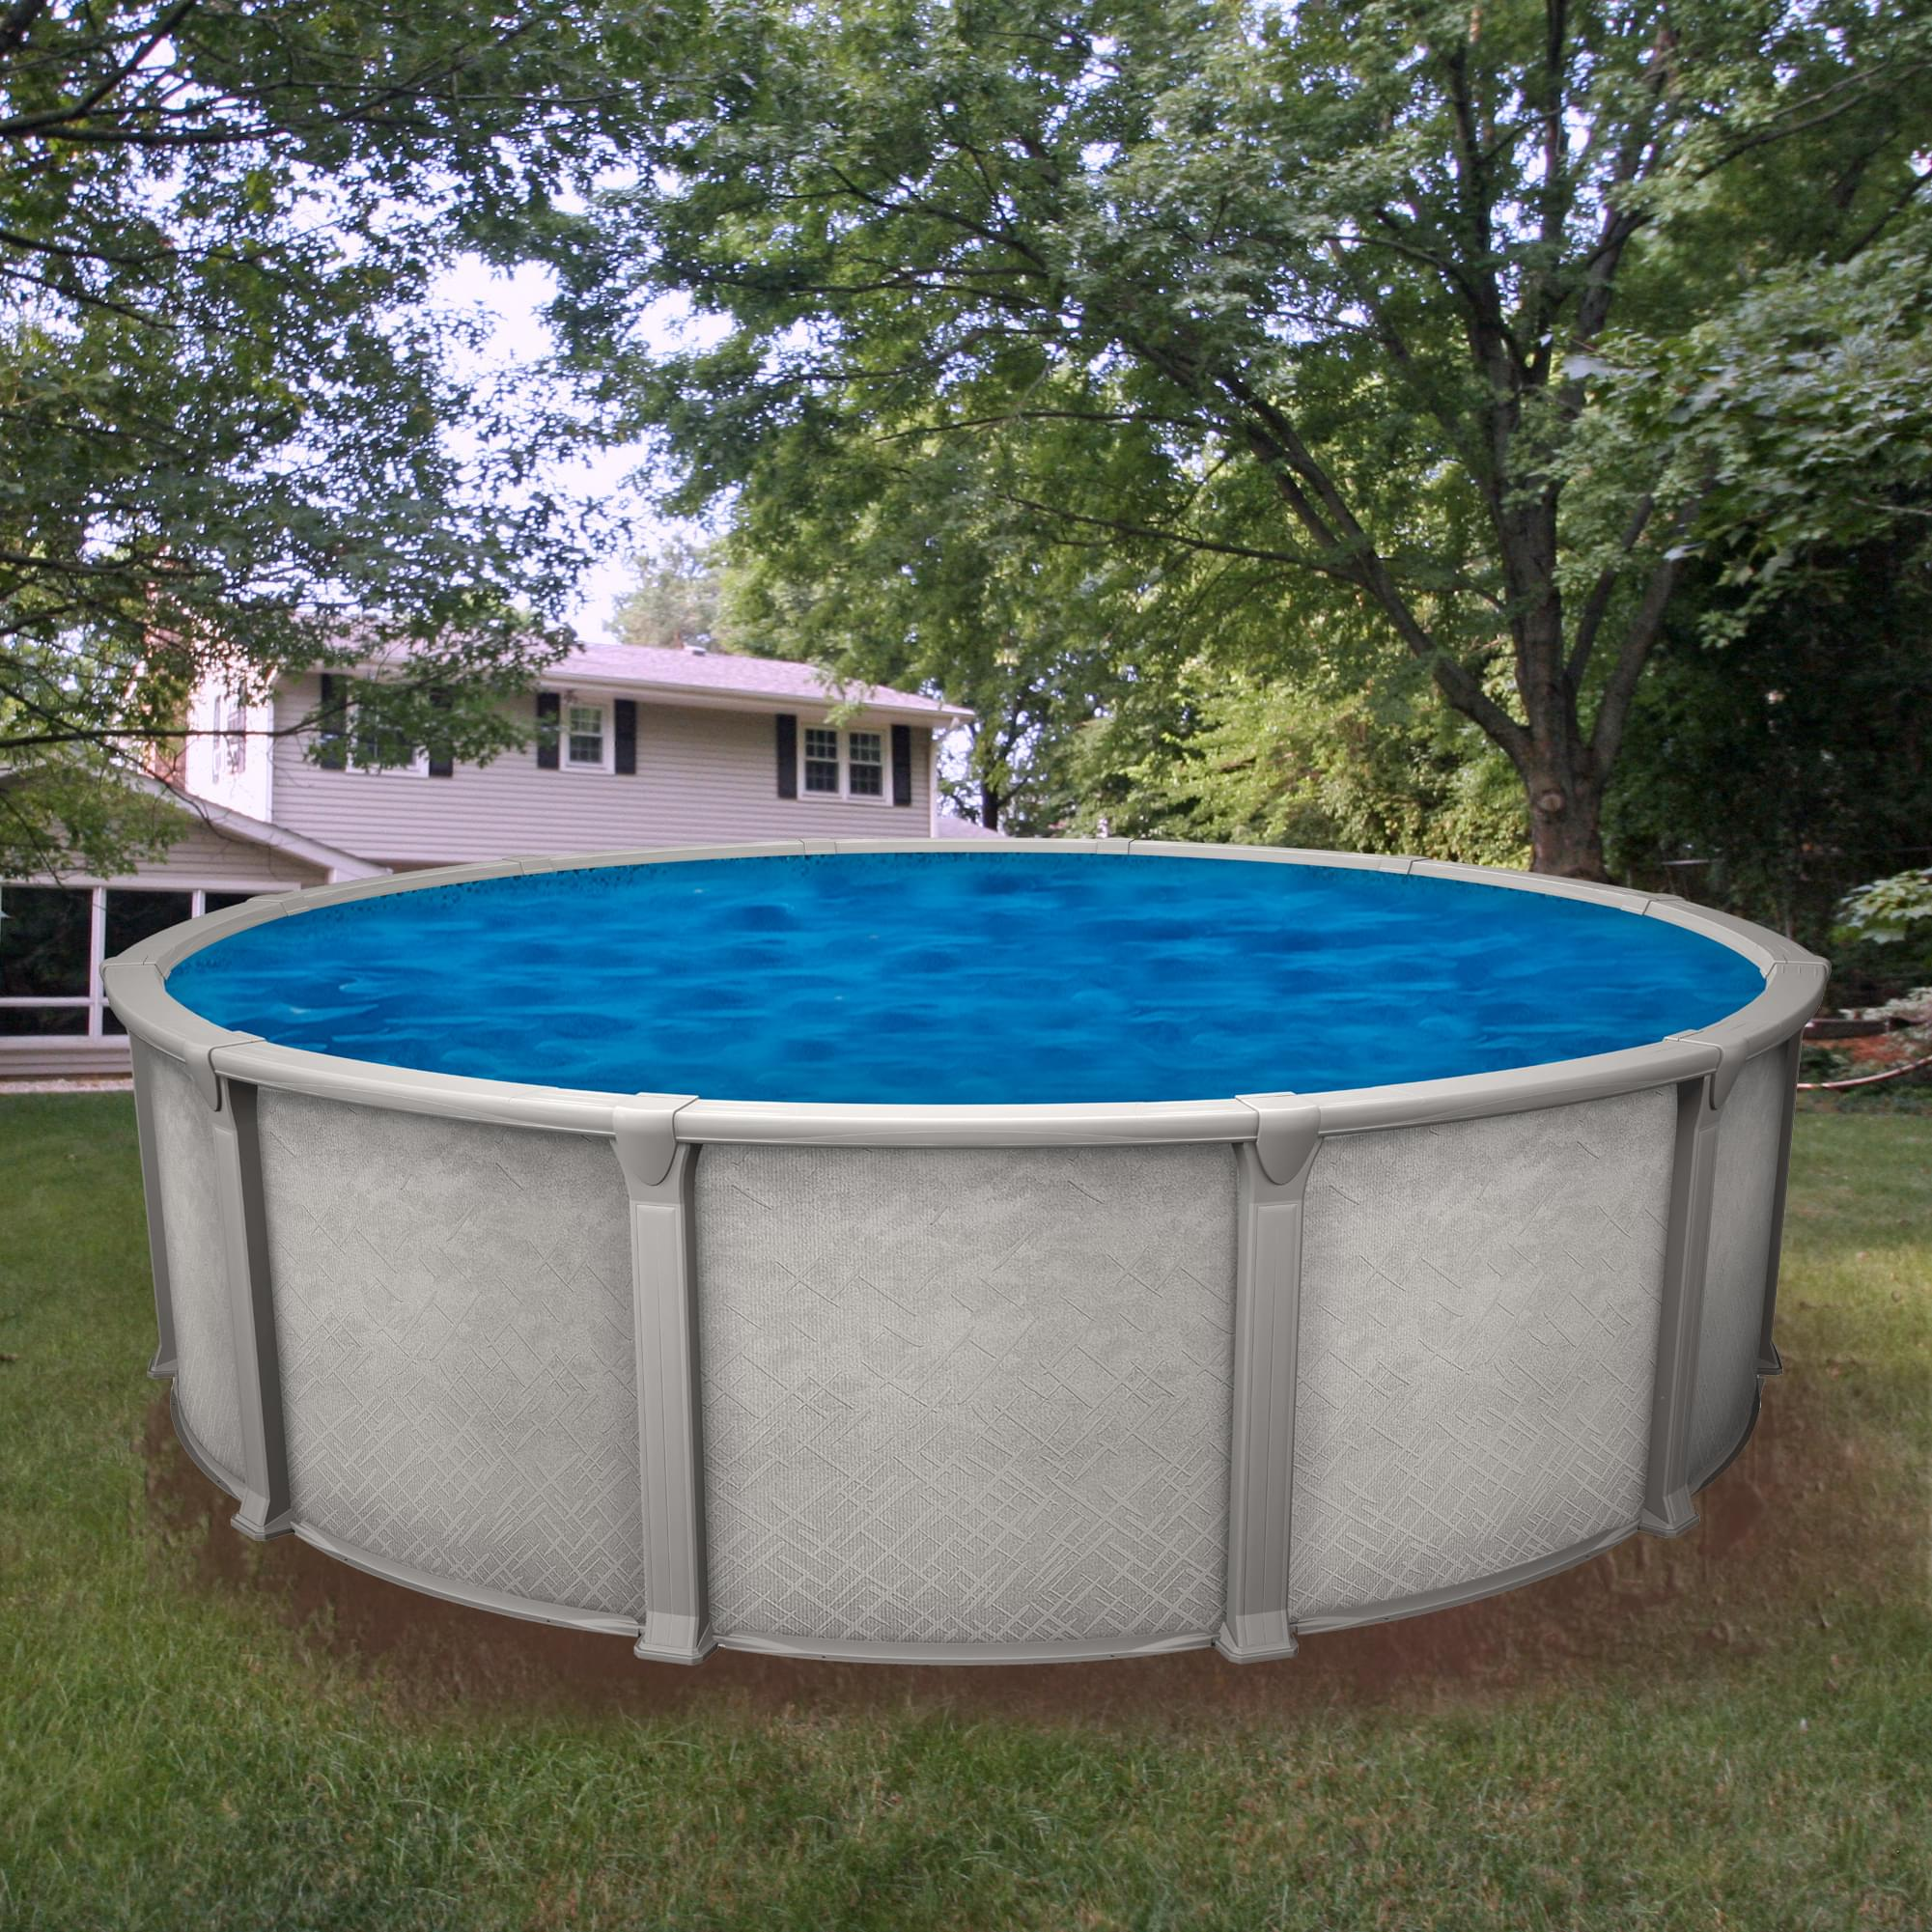 Galaxy 24 ft round above ground pool for Piscine 24 pieds